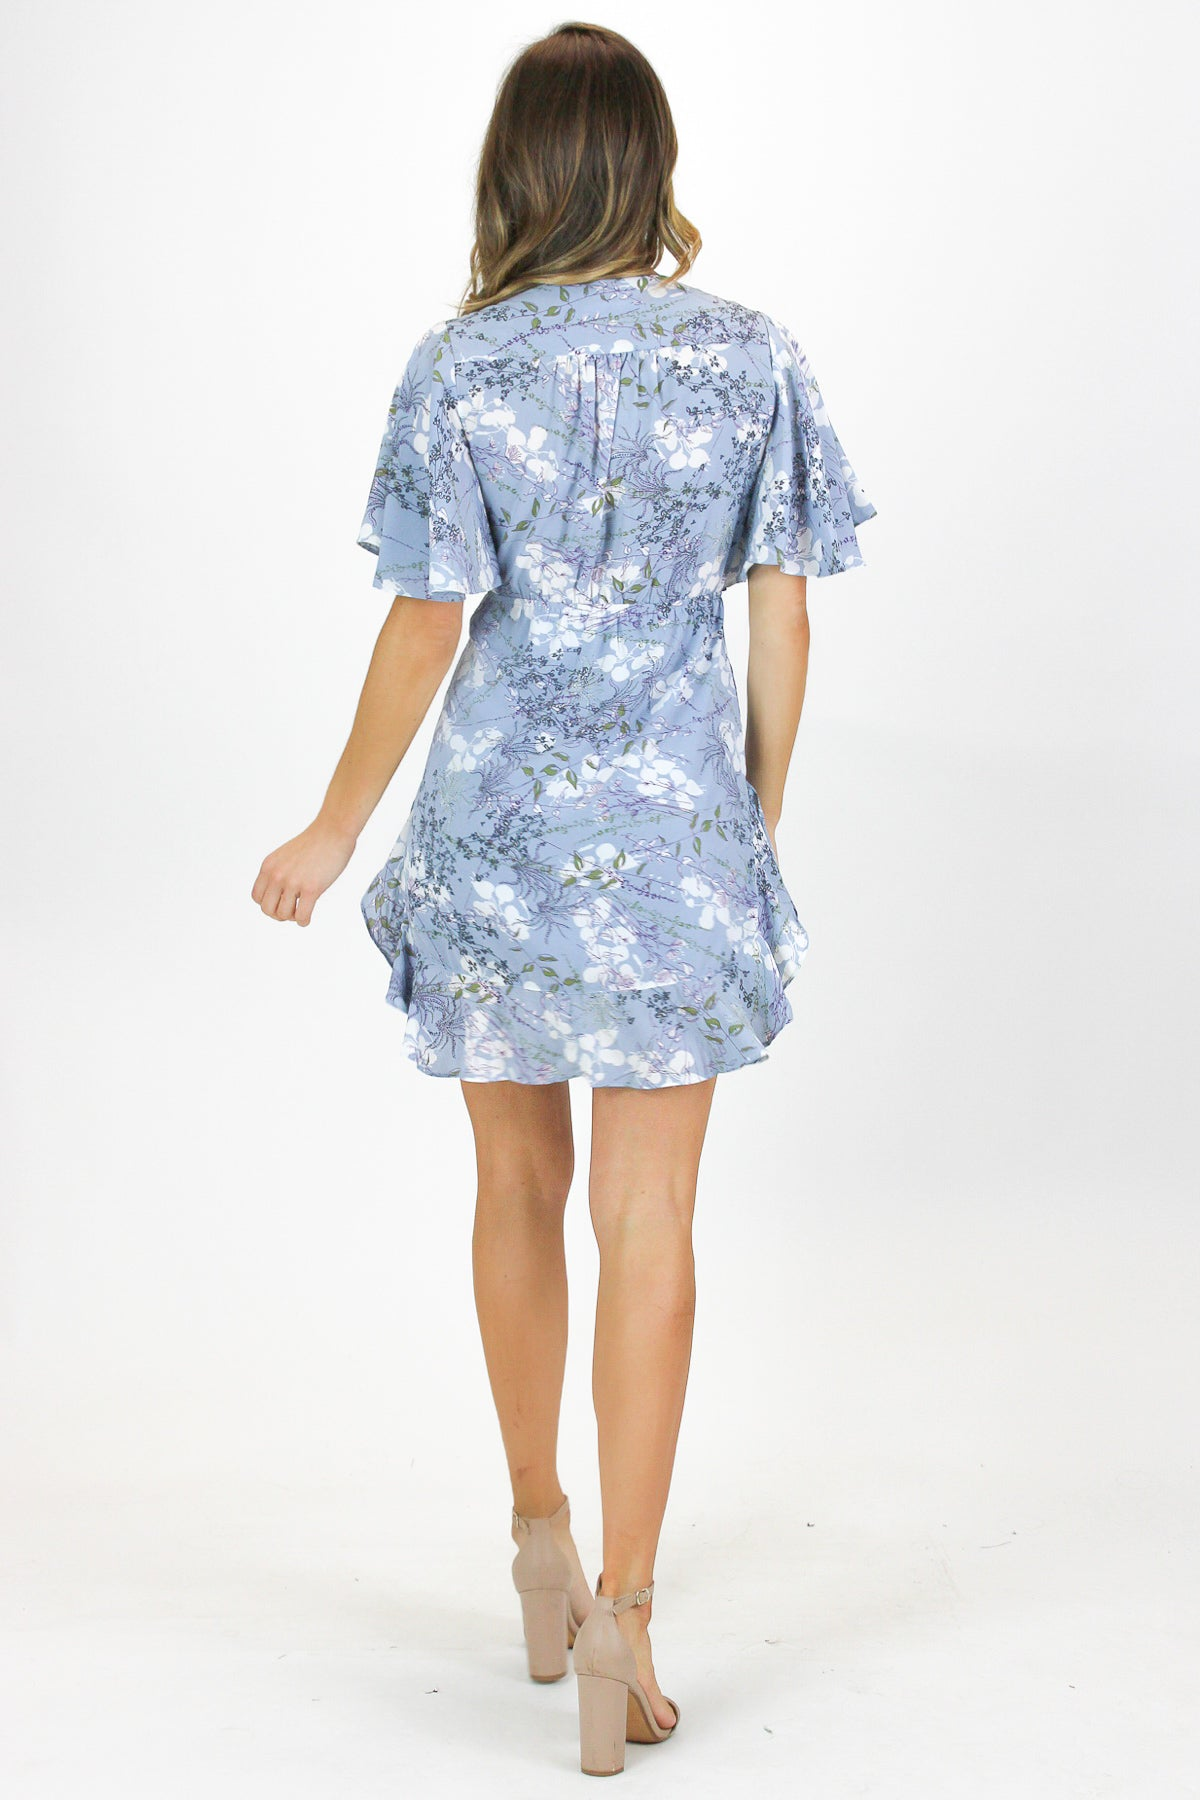 BABY BLUE FLORAL TUNIC DRESS